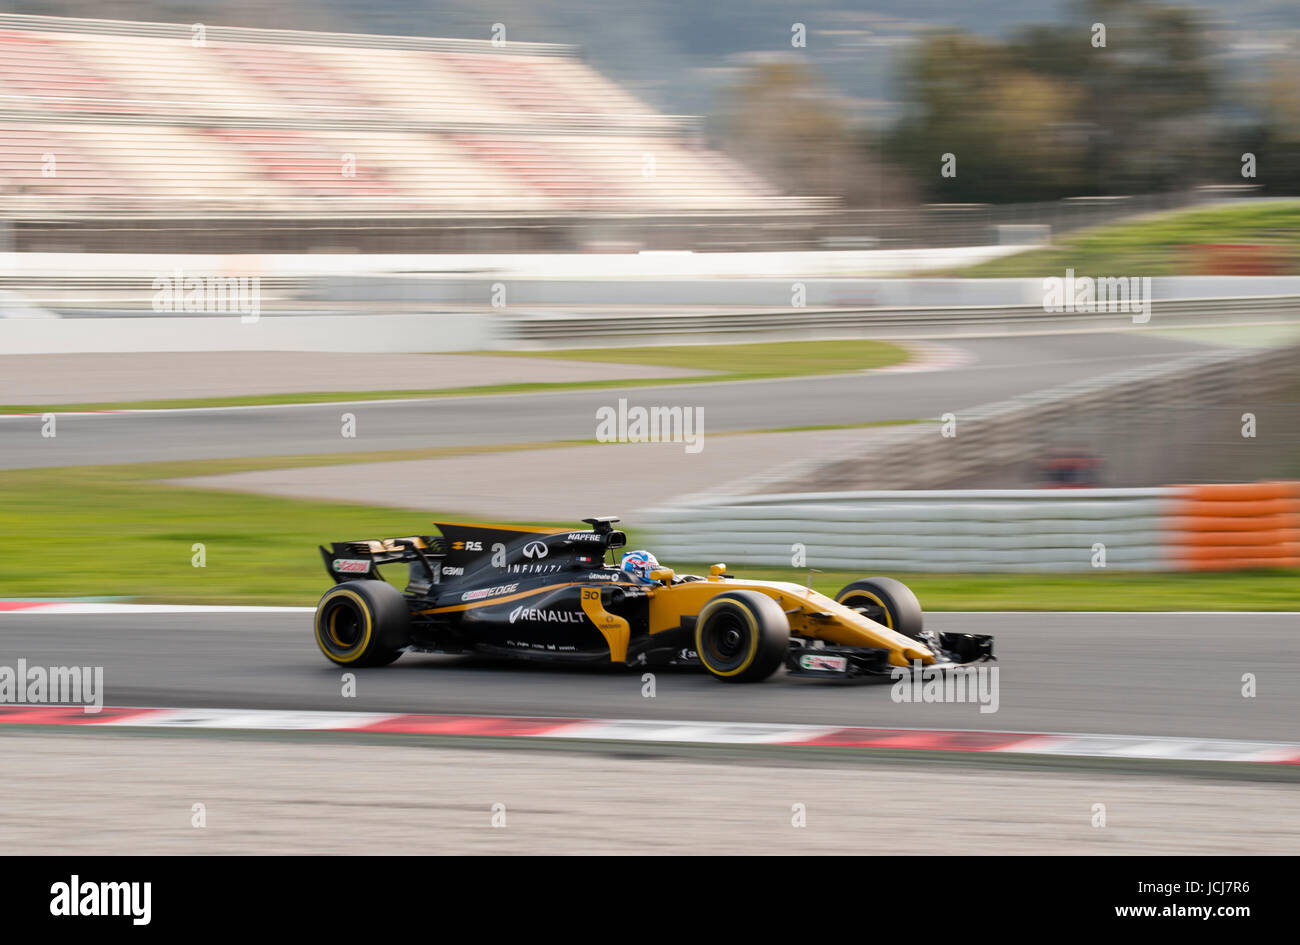 Jolyon Palmer, driver of the Renault Sport F1 Team, in action during the 2nd day of the Formula 1 Test at the Circuit - Stock Image